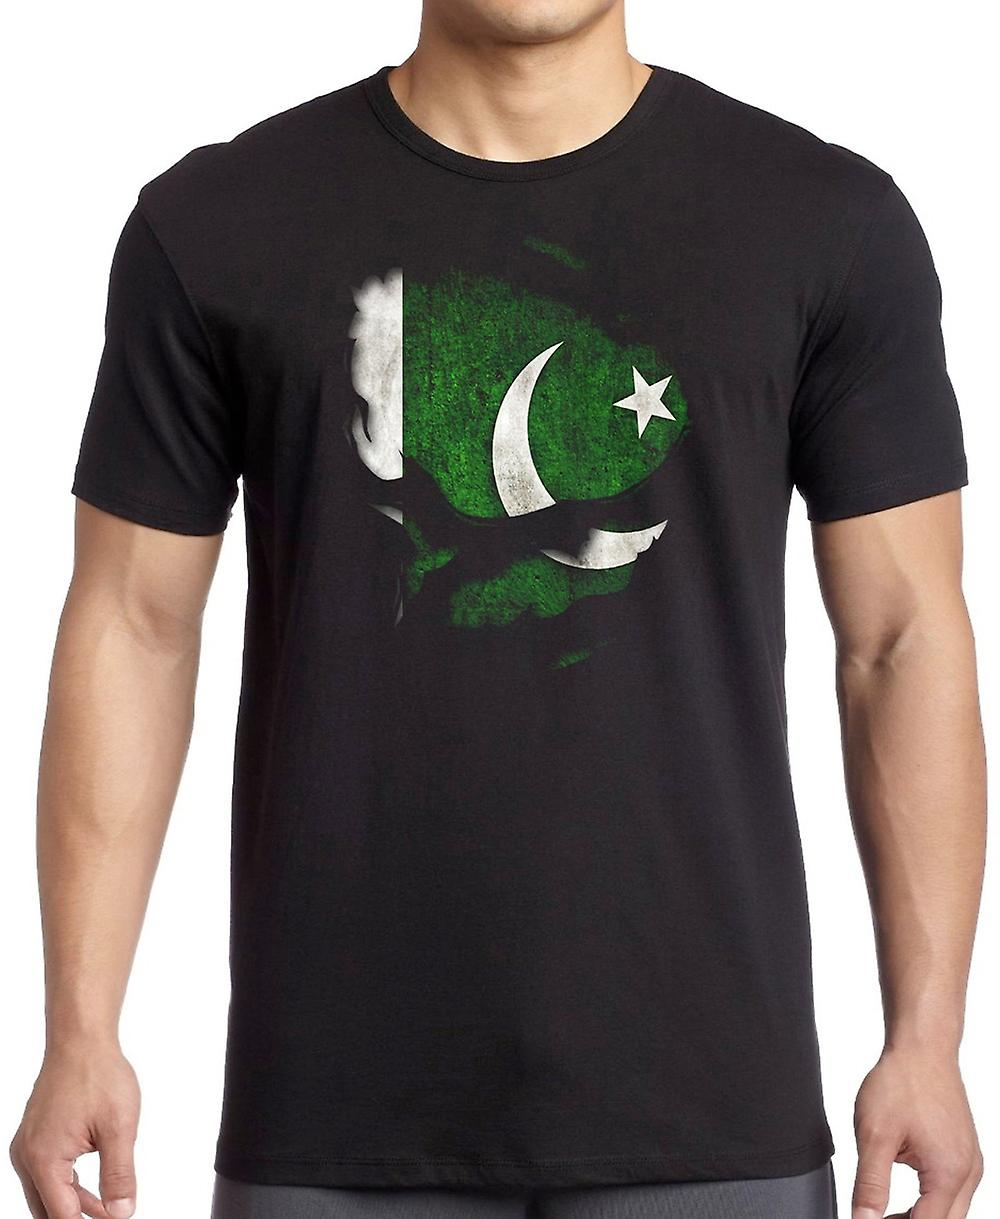 Pakistan Ripped Effect Under Shirt Kids T Shirt